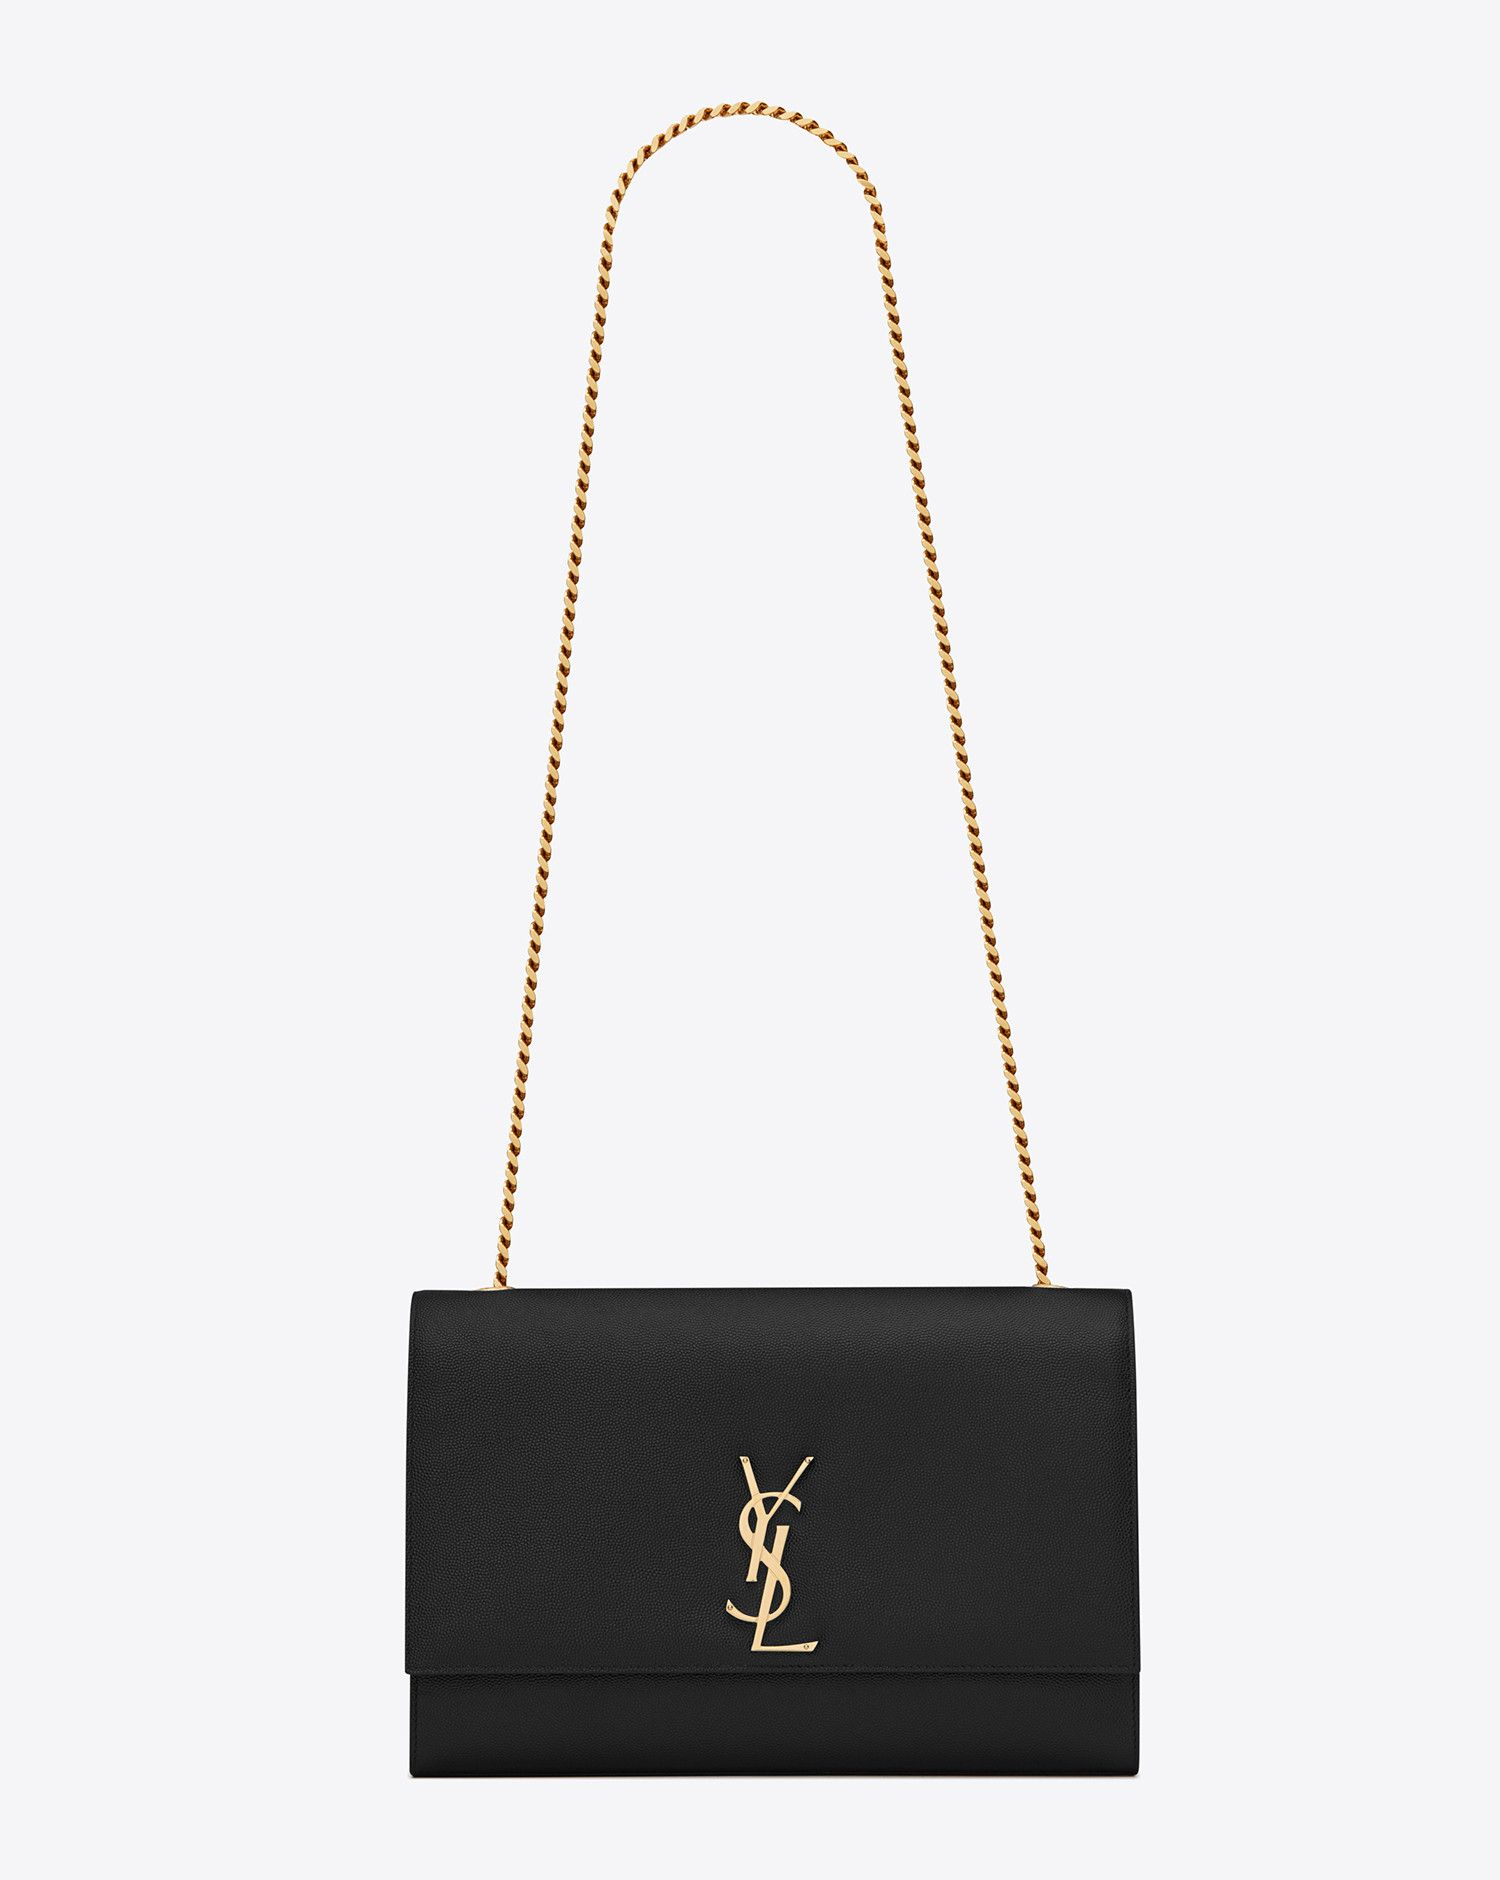 0b240714979 Saint Laurent MONOGRAM KATE: discover the selection and shop online on YSL .com